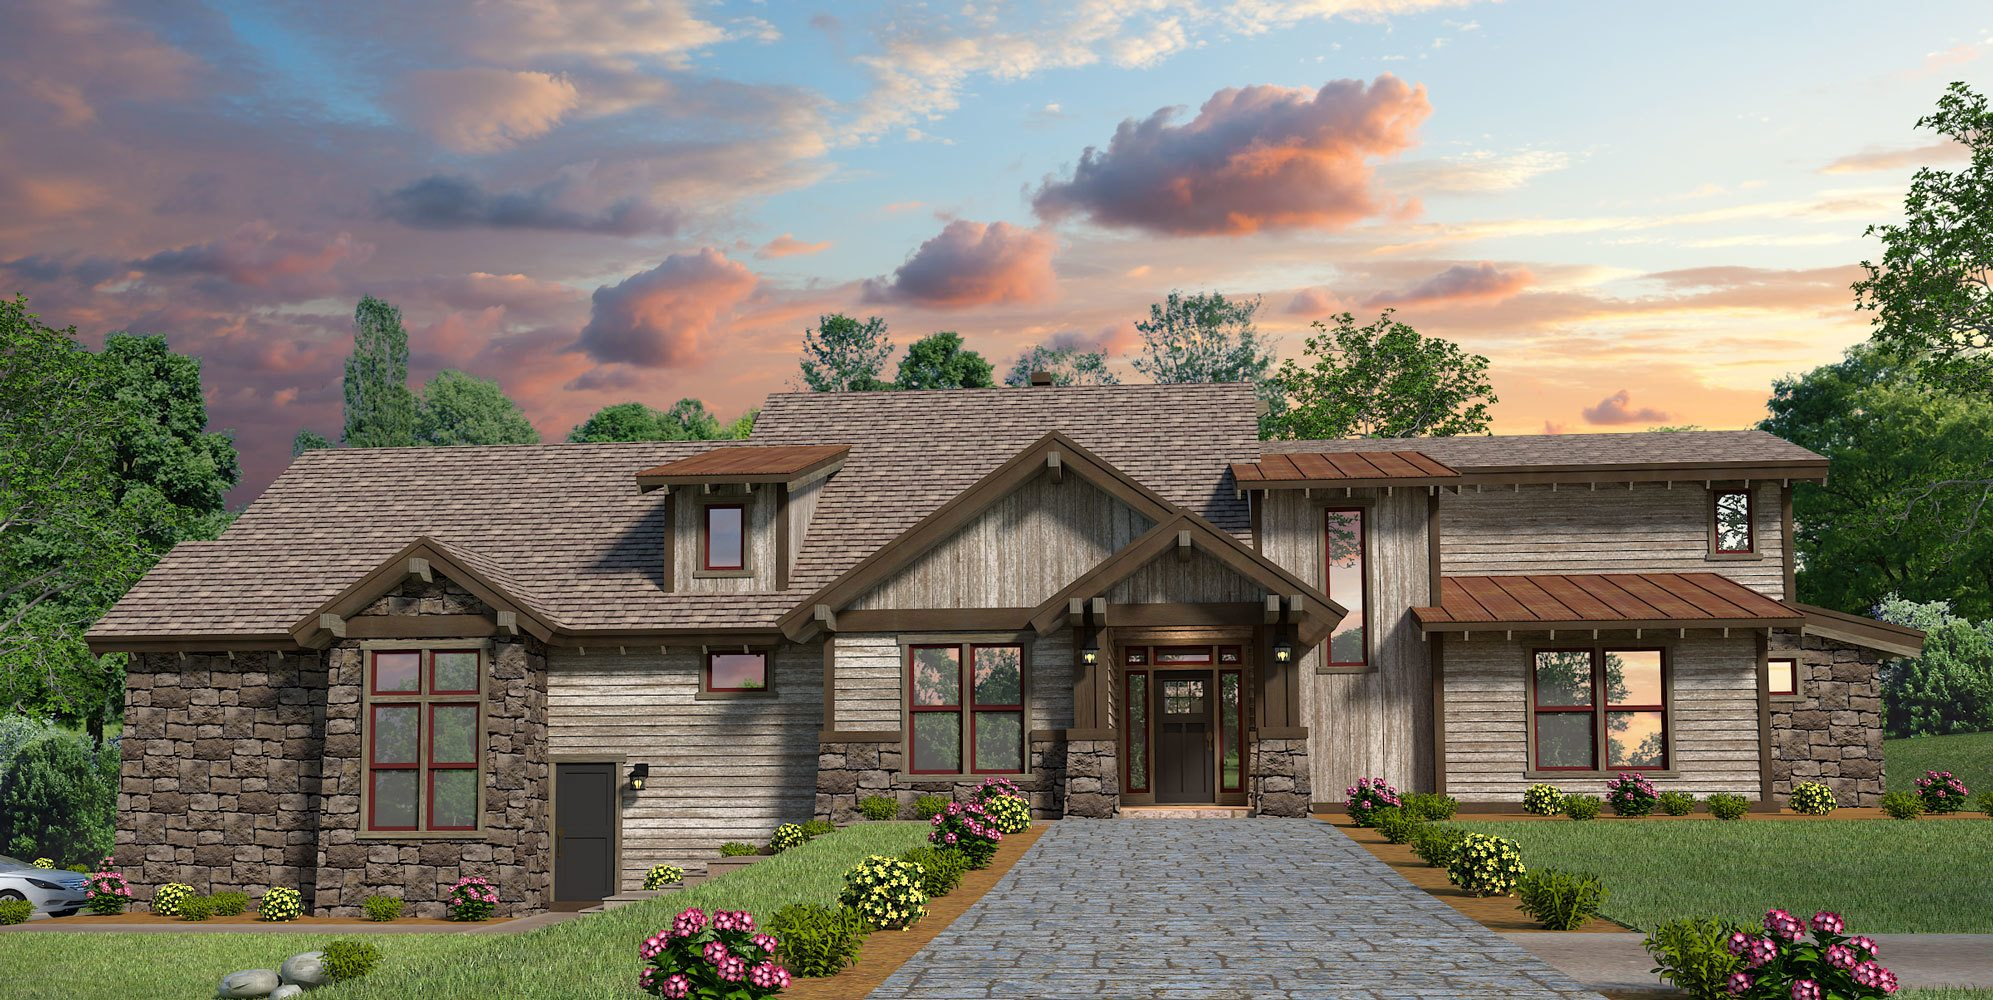 h0me design 35 beautiful of simple small house design Allentown